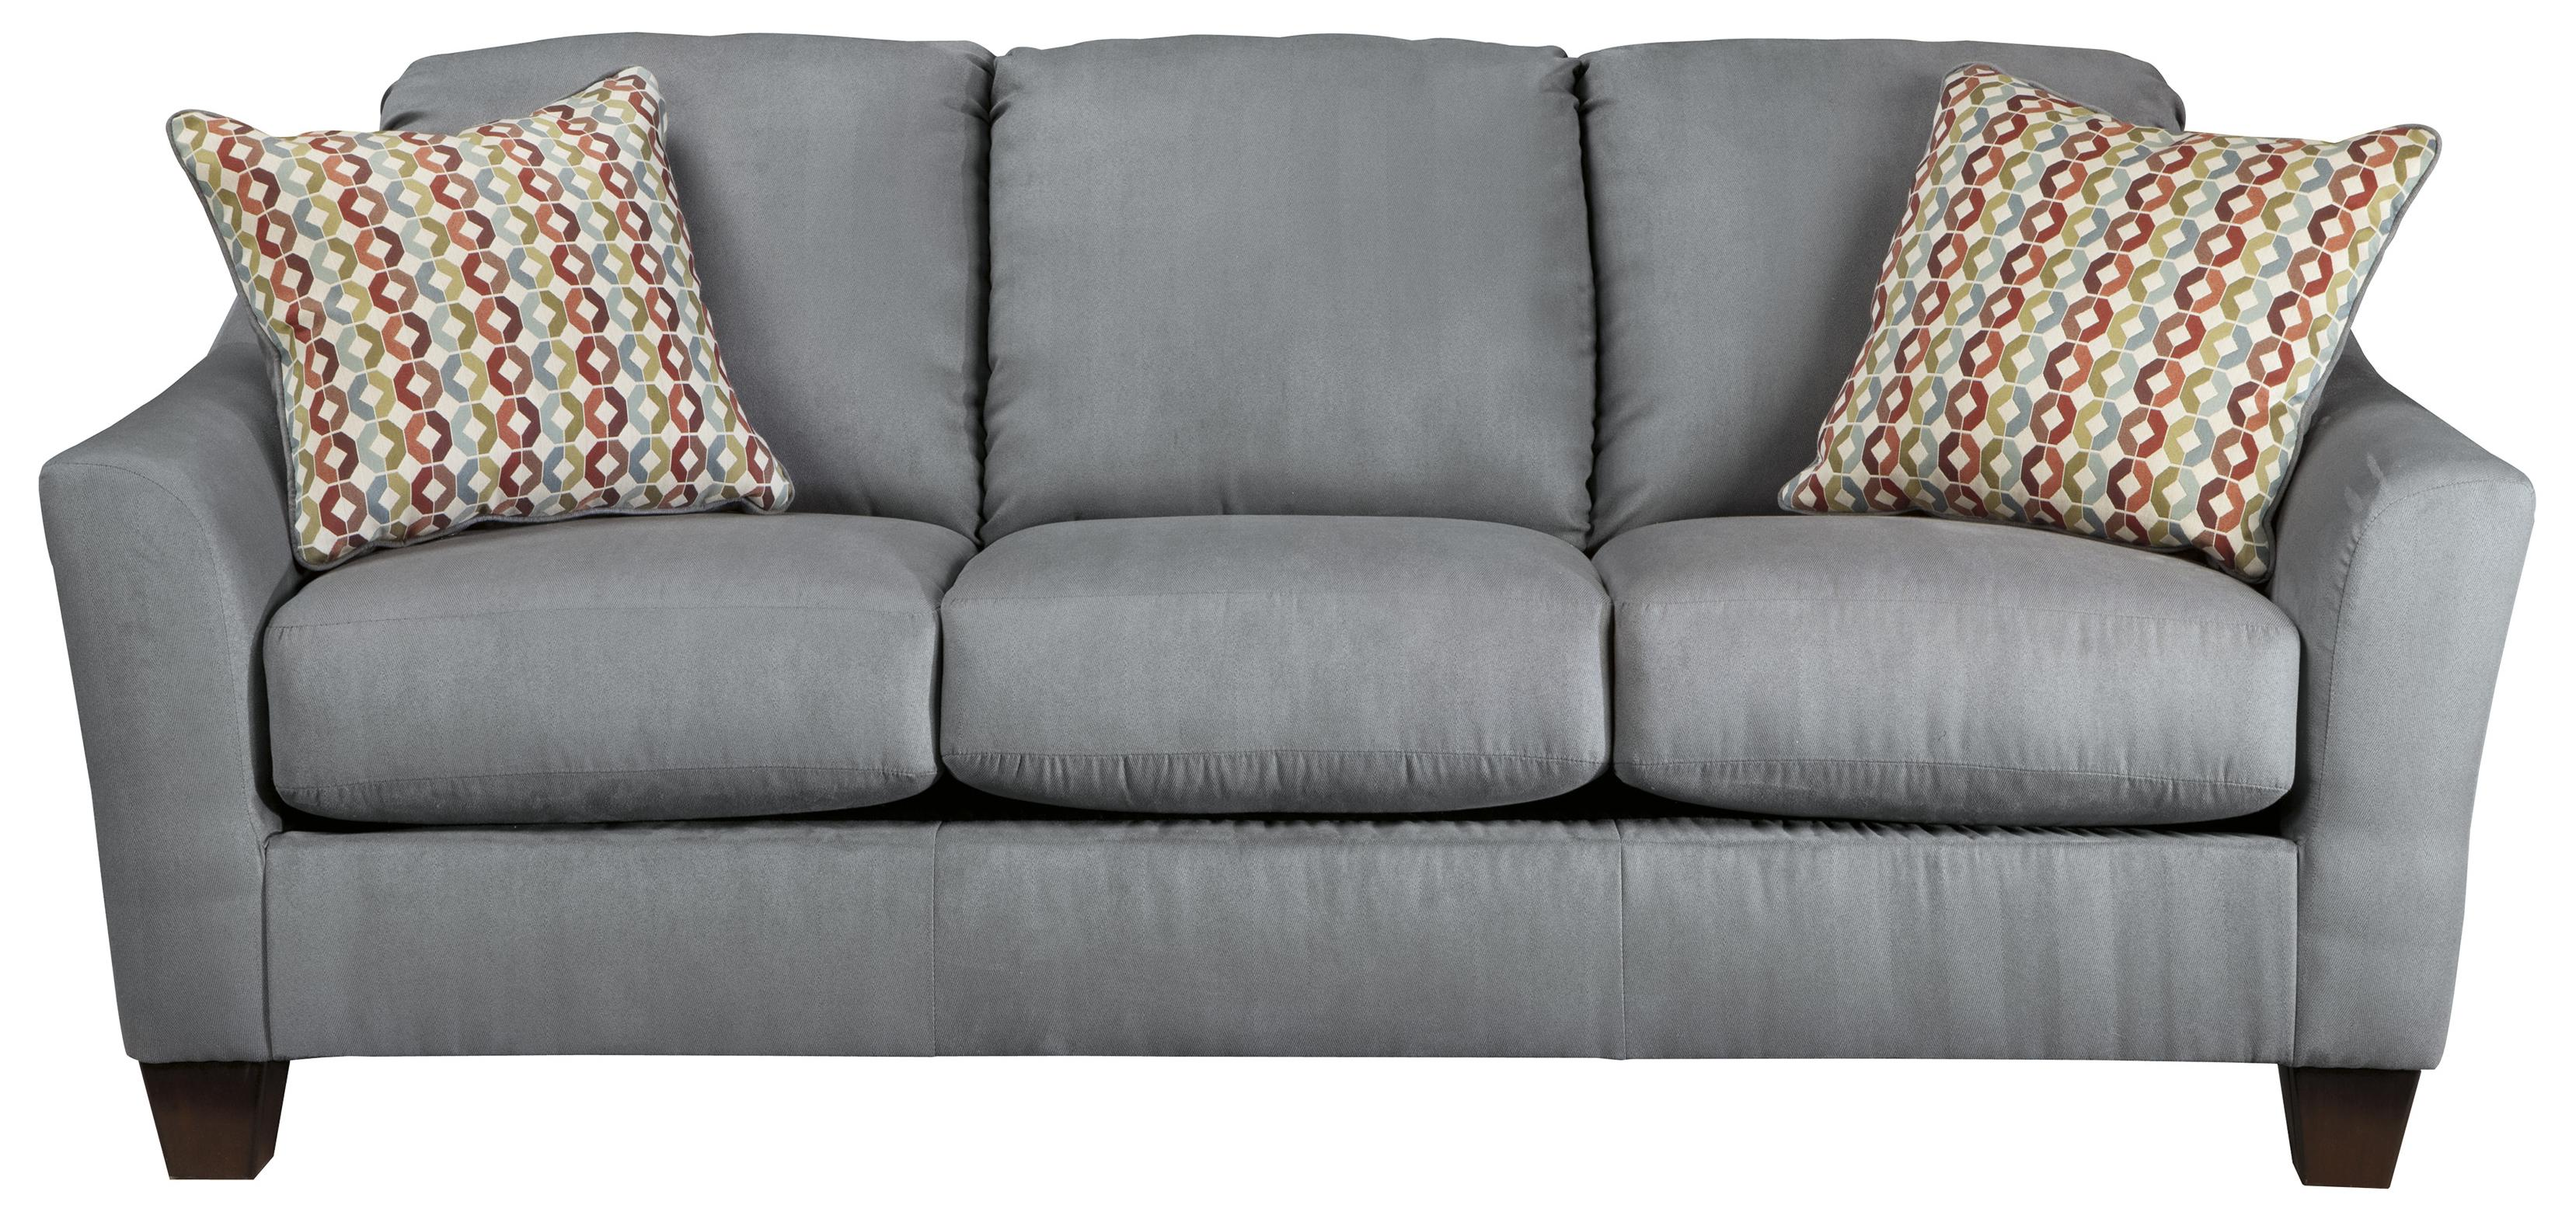 Signature Design by Ashley Talia Sofa - Item Number: 9580238